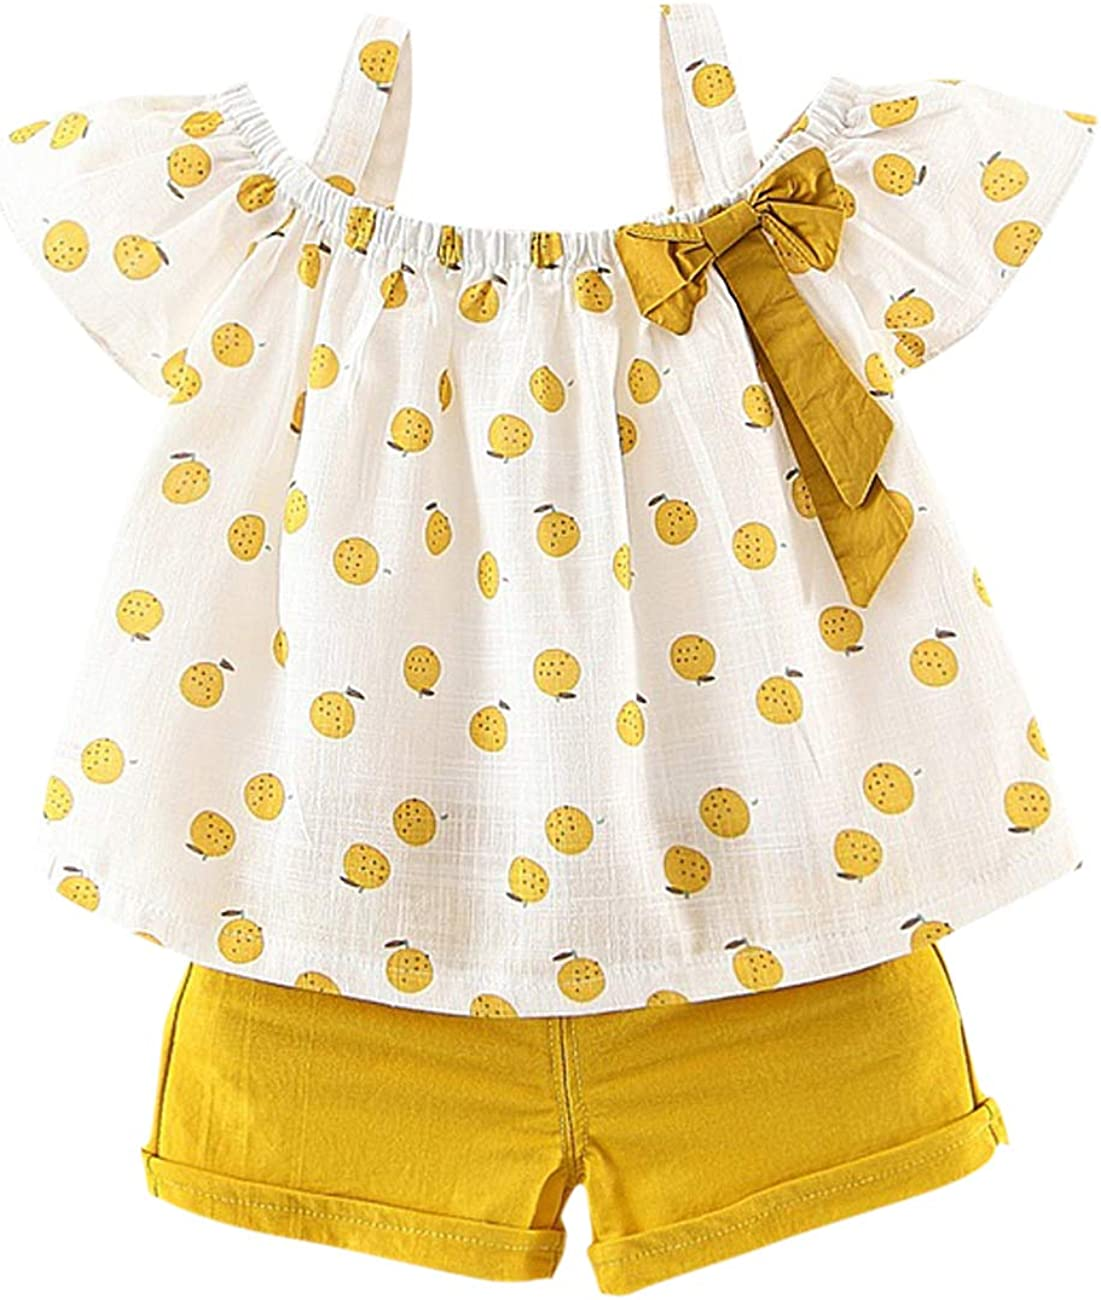 Toddler Girls Letter Tape Cami Top /& Leopard Track Shorts Little Girl Cute Outfit Clothes Set Cute Girl Clothing Set